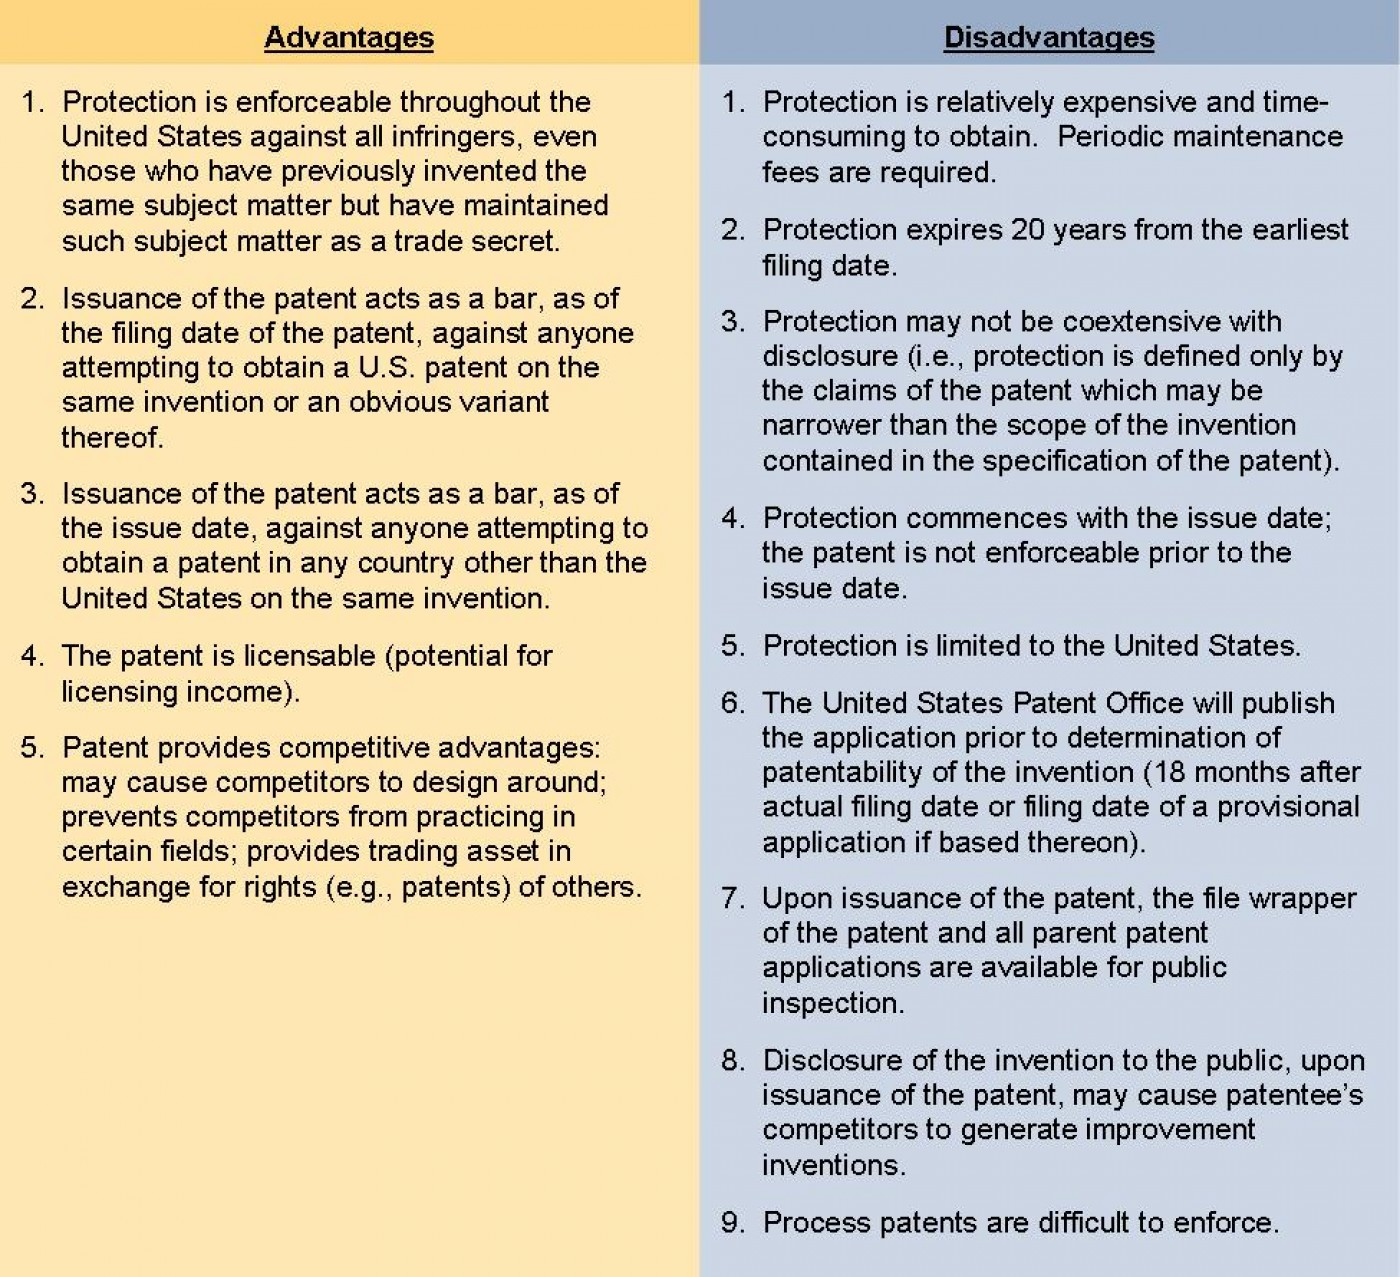 027 News87pic2 Advantage And Disadvantage Of Science Essay Shocking Advantages Disadvantages In Tamil Pdf Marathi Language English 1400